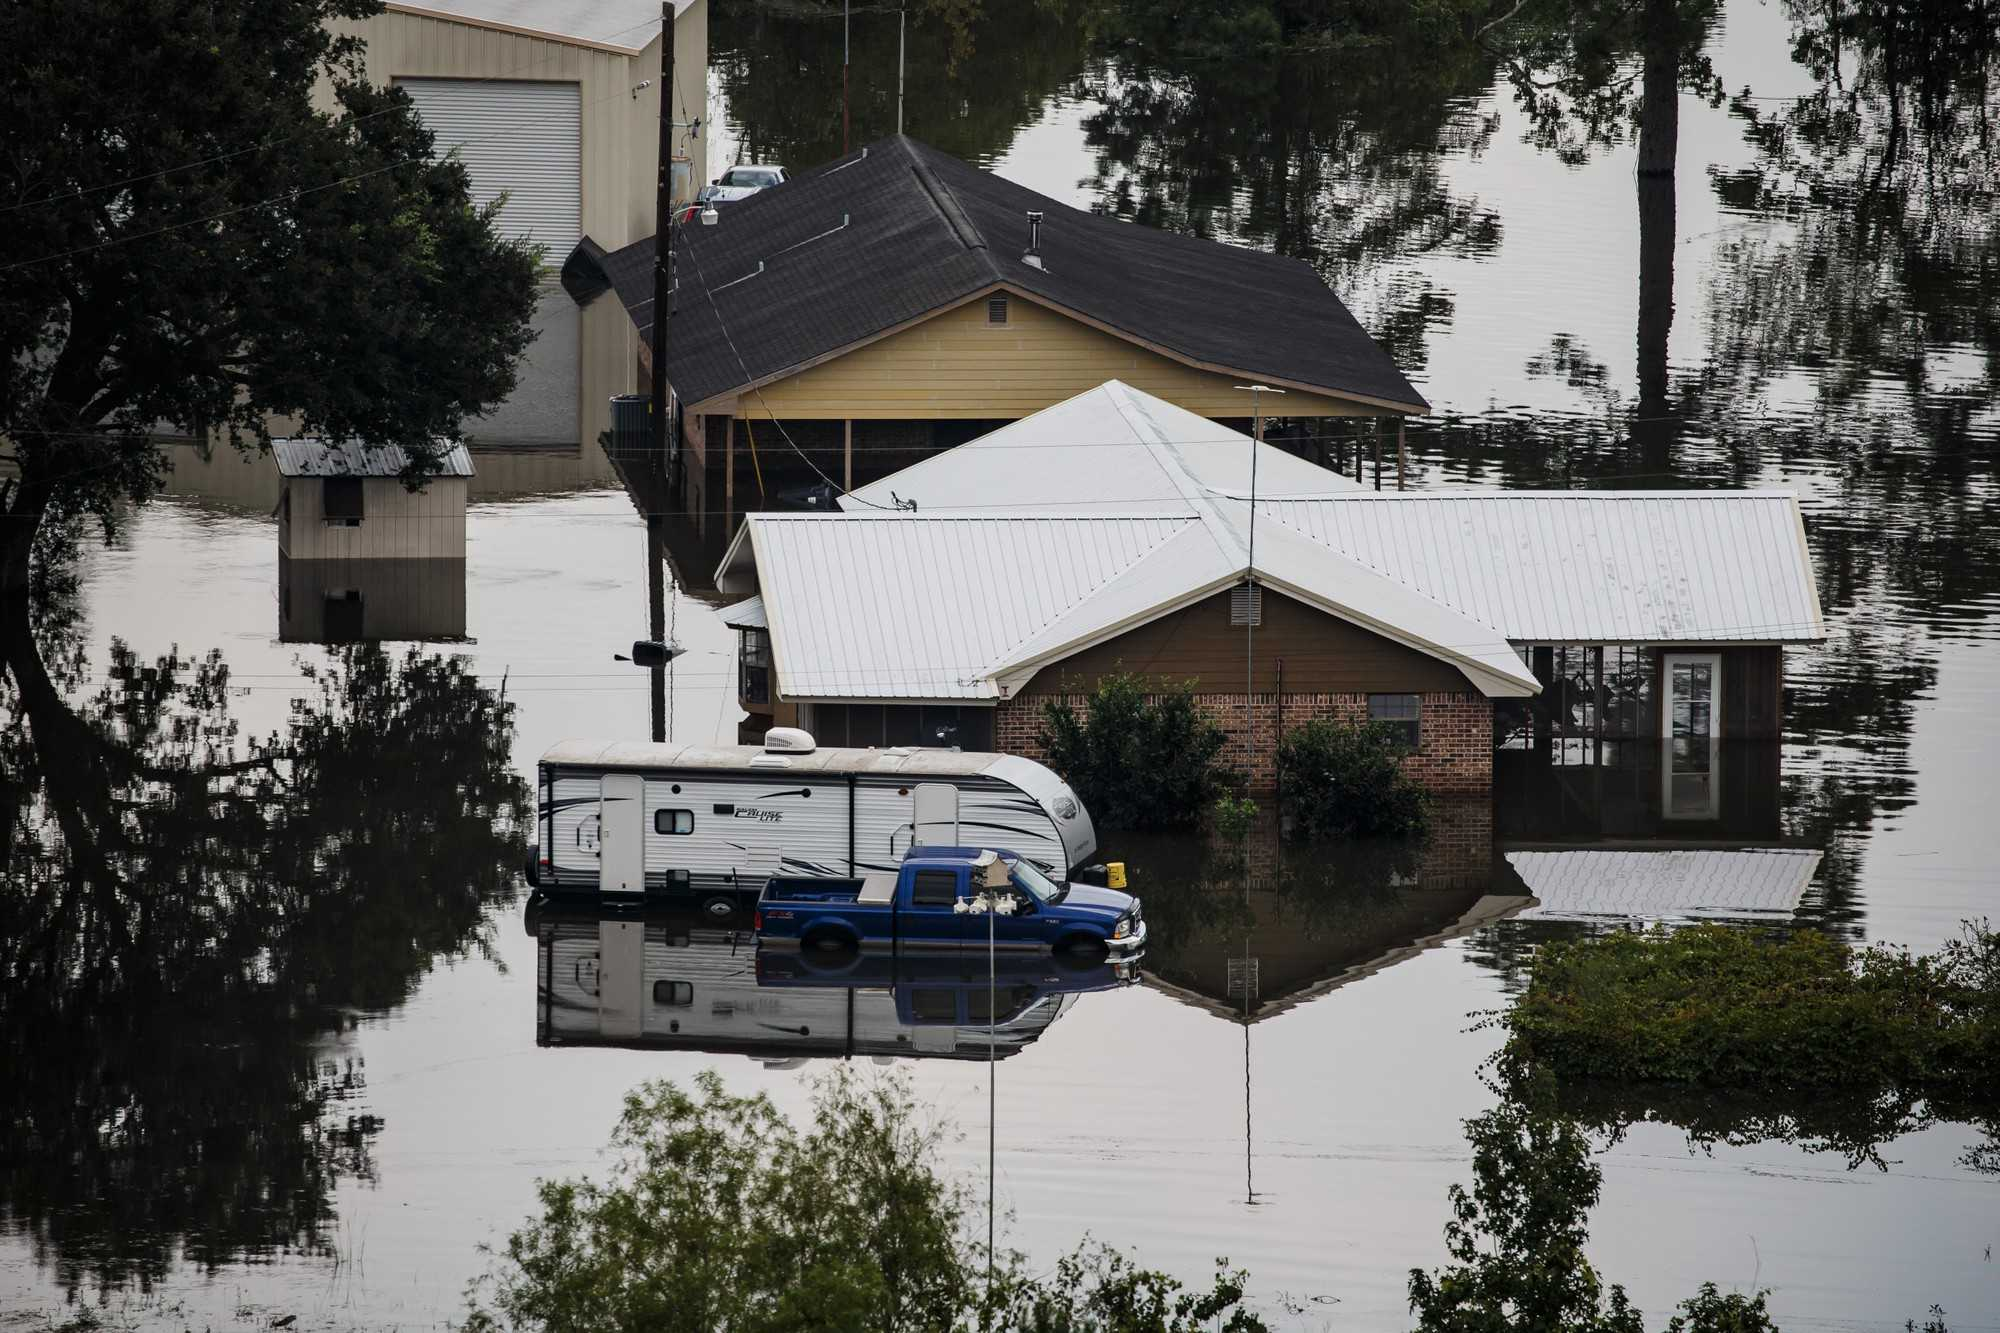 Rising floodwater engulfs entire residential neighborhoods in the aftermath of Tropical Storm Harvey near Lumberton, Texas, on Thursday, Aug. 31, 2017. (Marcus Yam/Los Angeles Times/TNS)